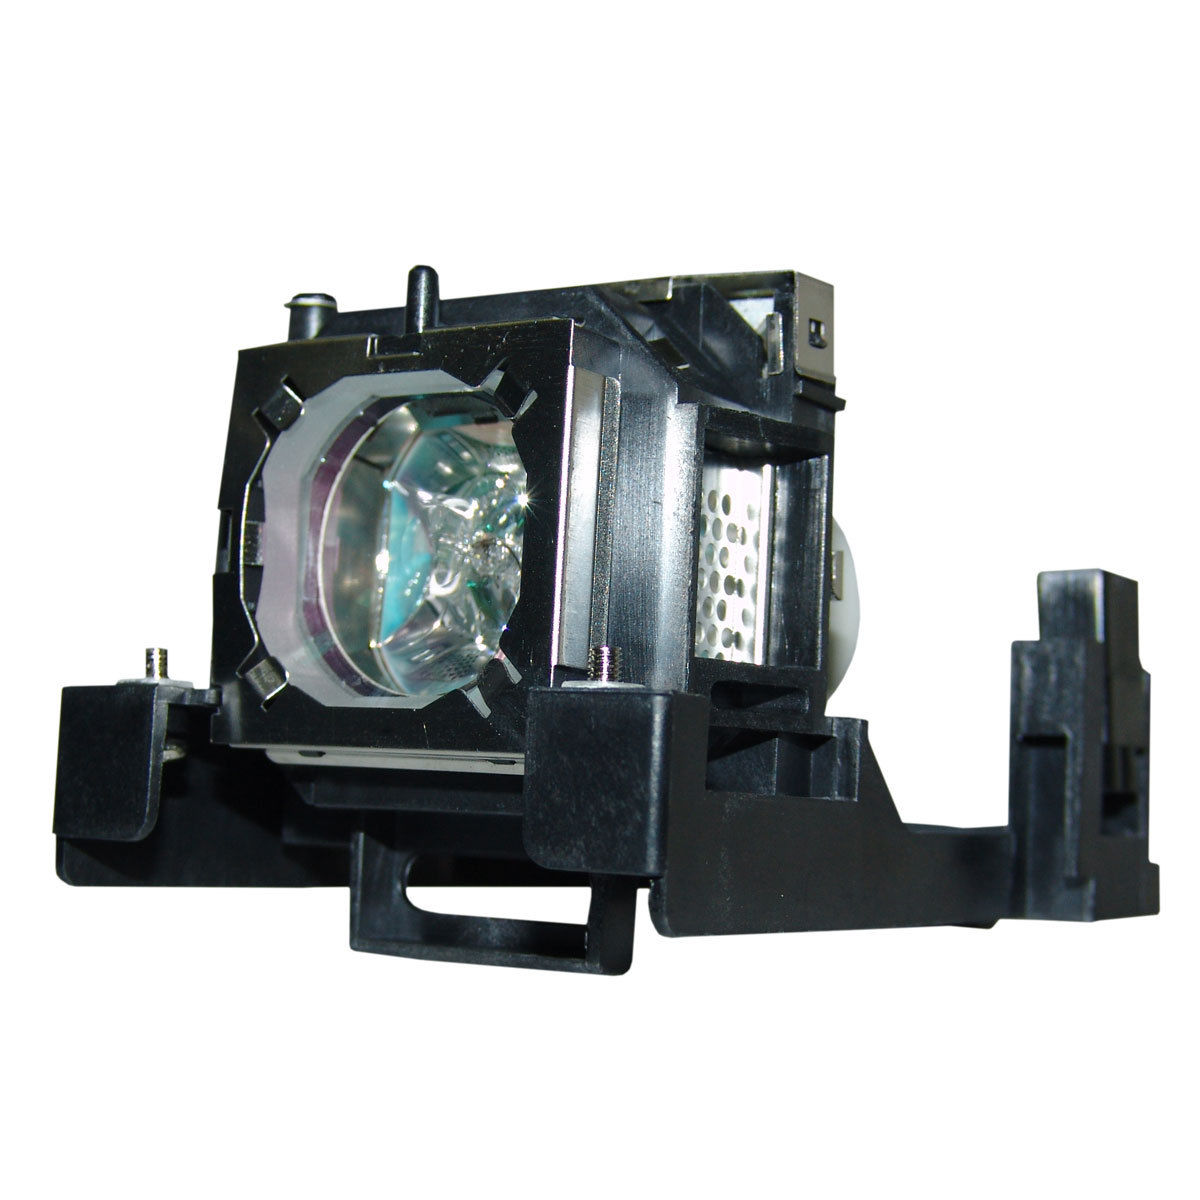 ET-LAT100 LAT100 For Panasonic PT-TW230 PT-TW230EA PT-TW230REA PT-TW230U PT-TW231RE PT-TW231RU Projector Lamp Bulb With housing et lab10 replacement projector bulb lamp with housing for panasonic pt u1x68 ptl lb20su pt u1x67 pt u1x88 pt px95 pt lb20